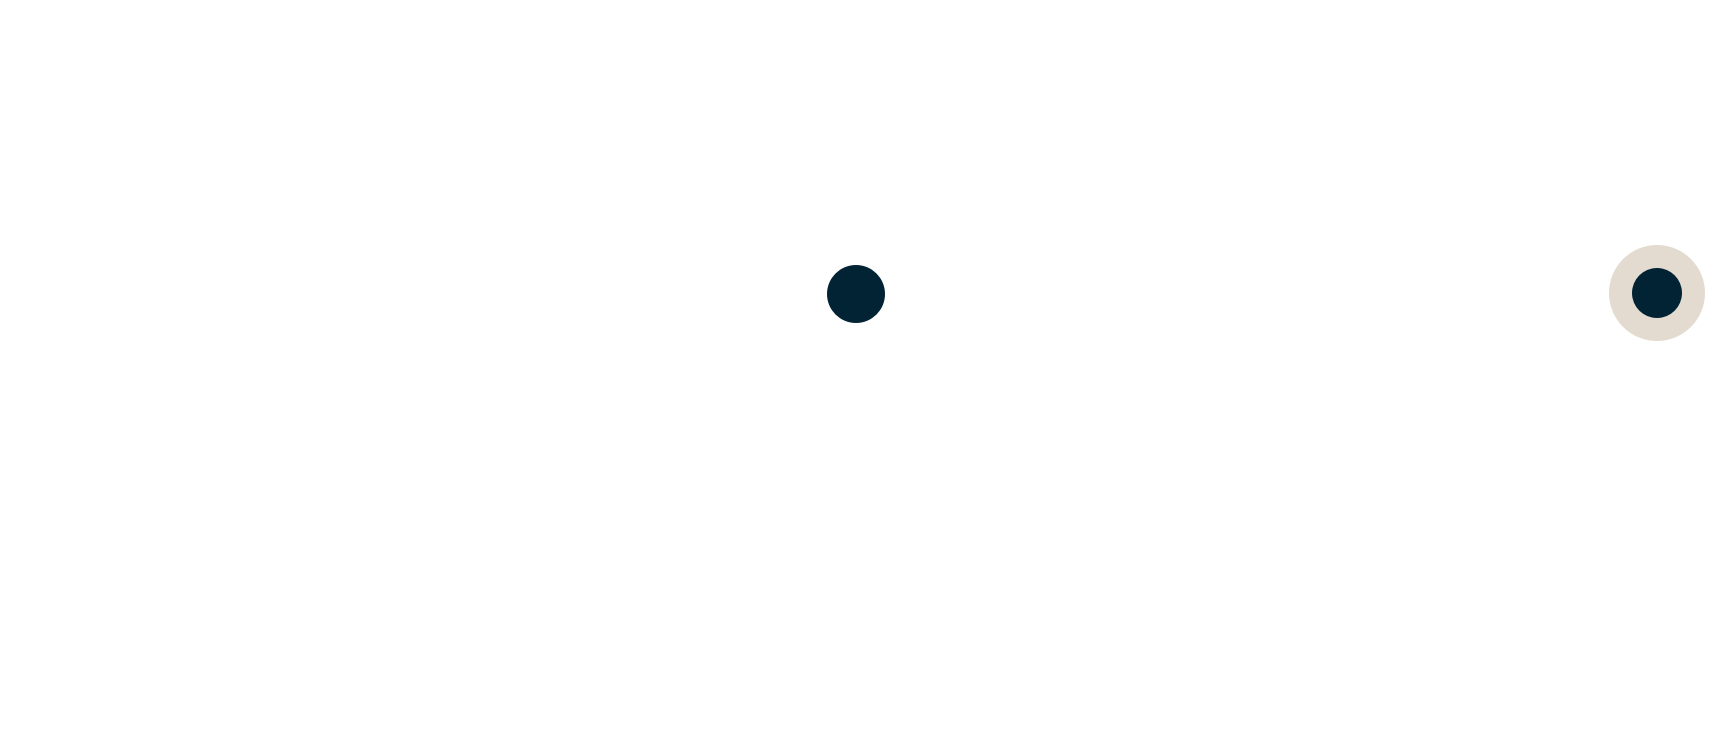 The Double Diamond Model by the Design Council